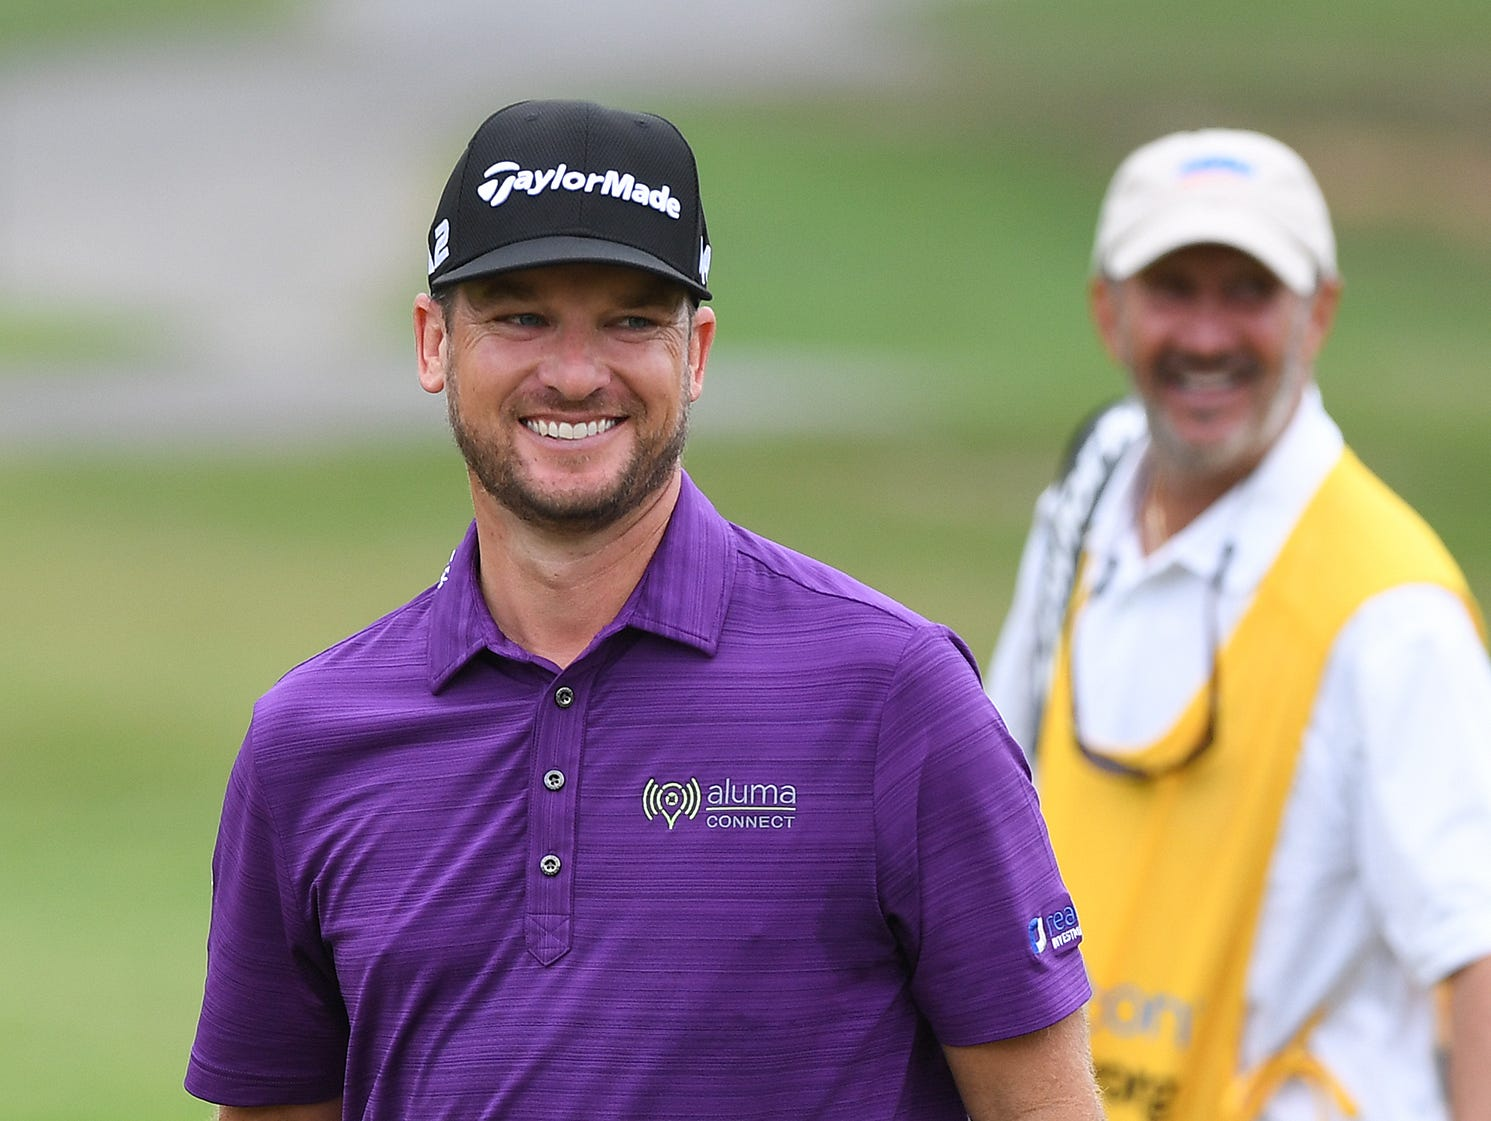 Kyle Thompson smiles as he plays at Furman during the first day of the BMW Charity Pro-Am on Thursday, May 18, 2017.